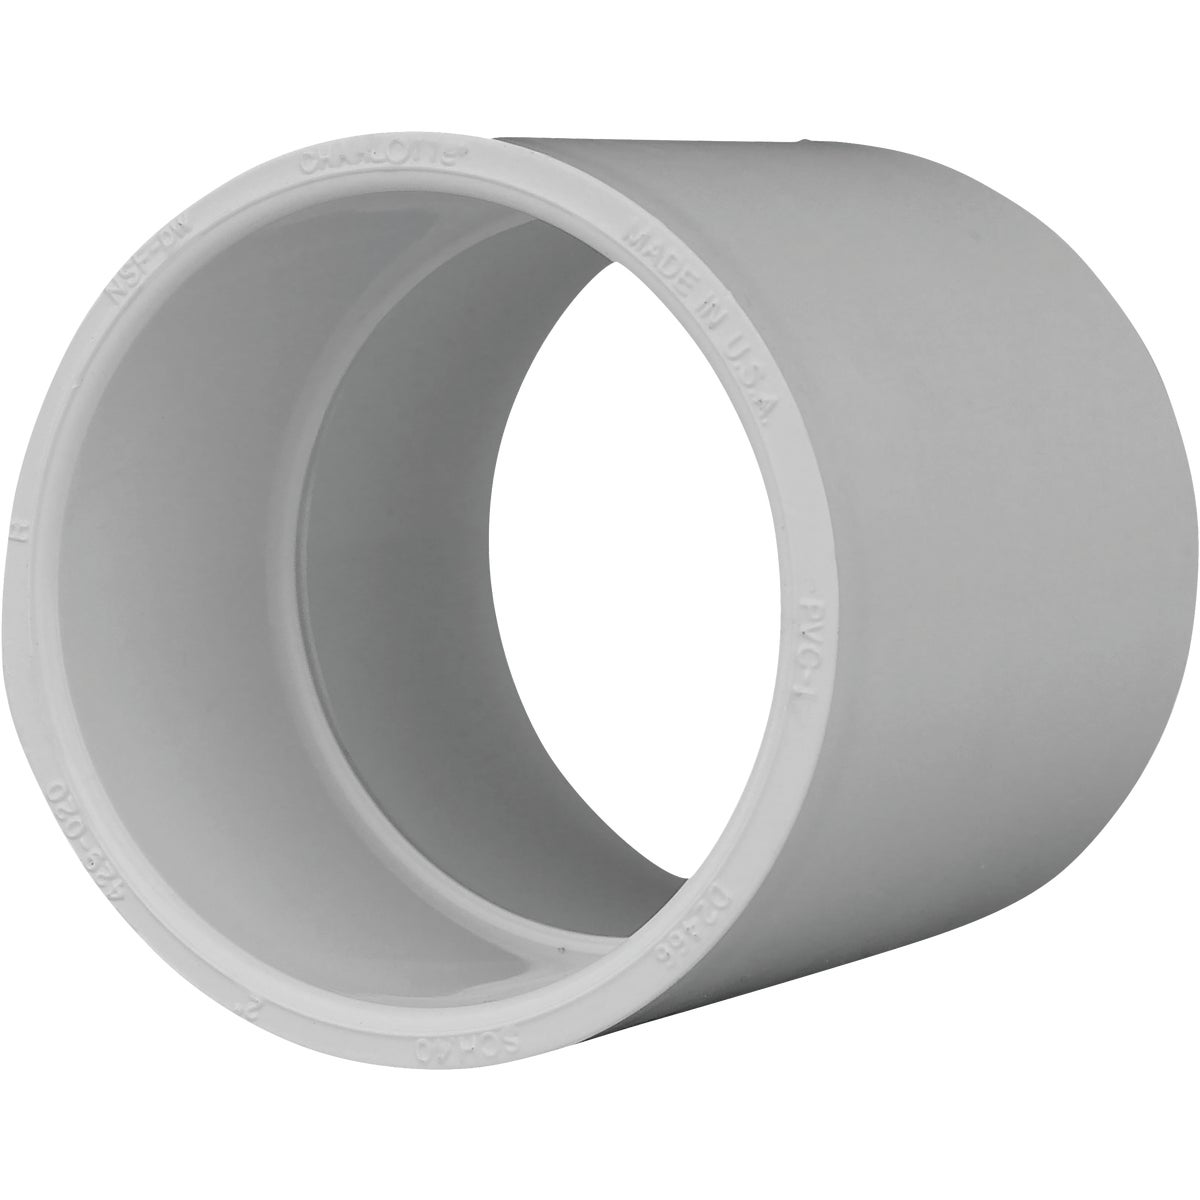 "2"" SCH40 PVC COUPLING - 30120 by Genova Inc"